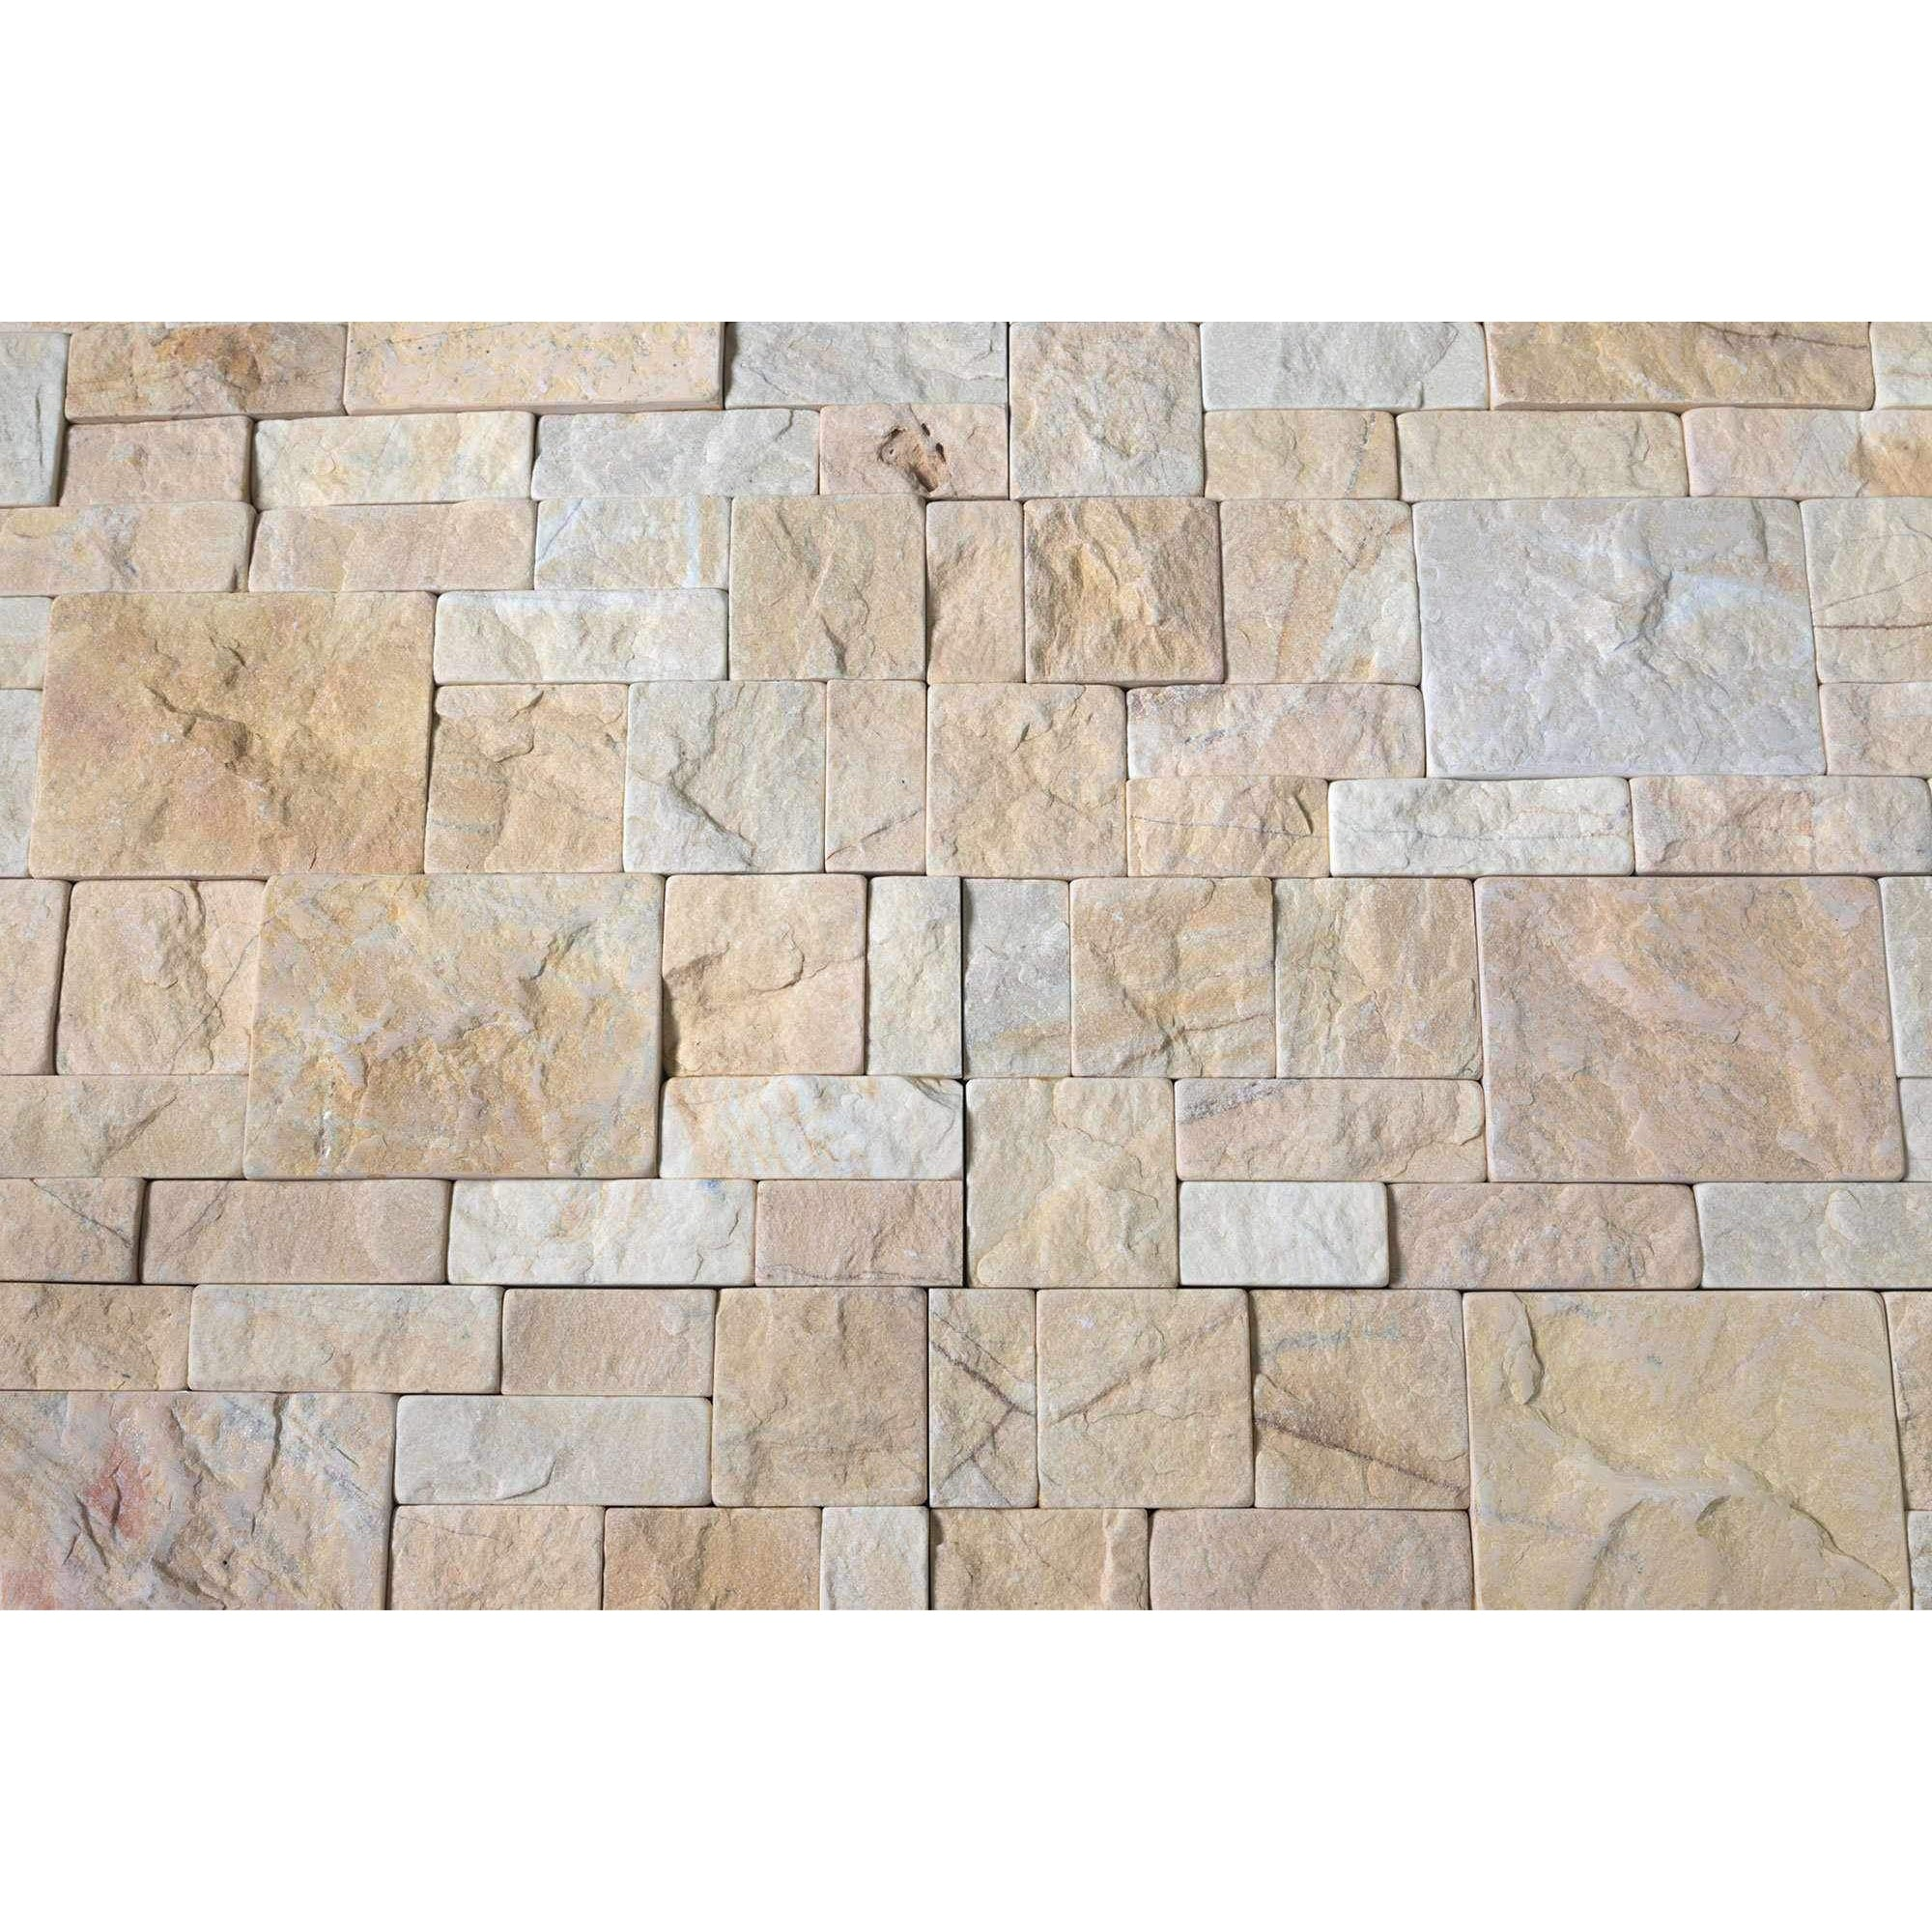 Natural Stacked Stone Feature Wall Cladding Panels - Tumbled Mustard Montage